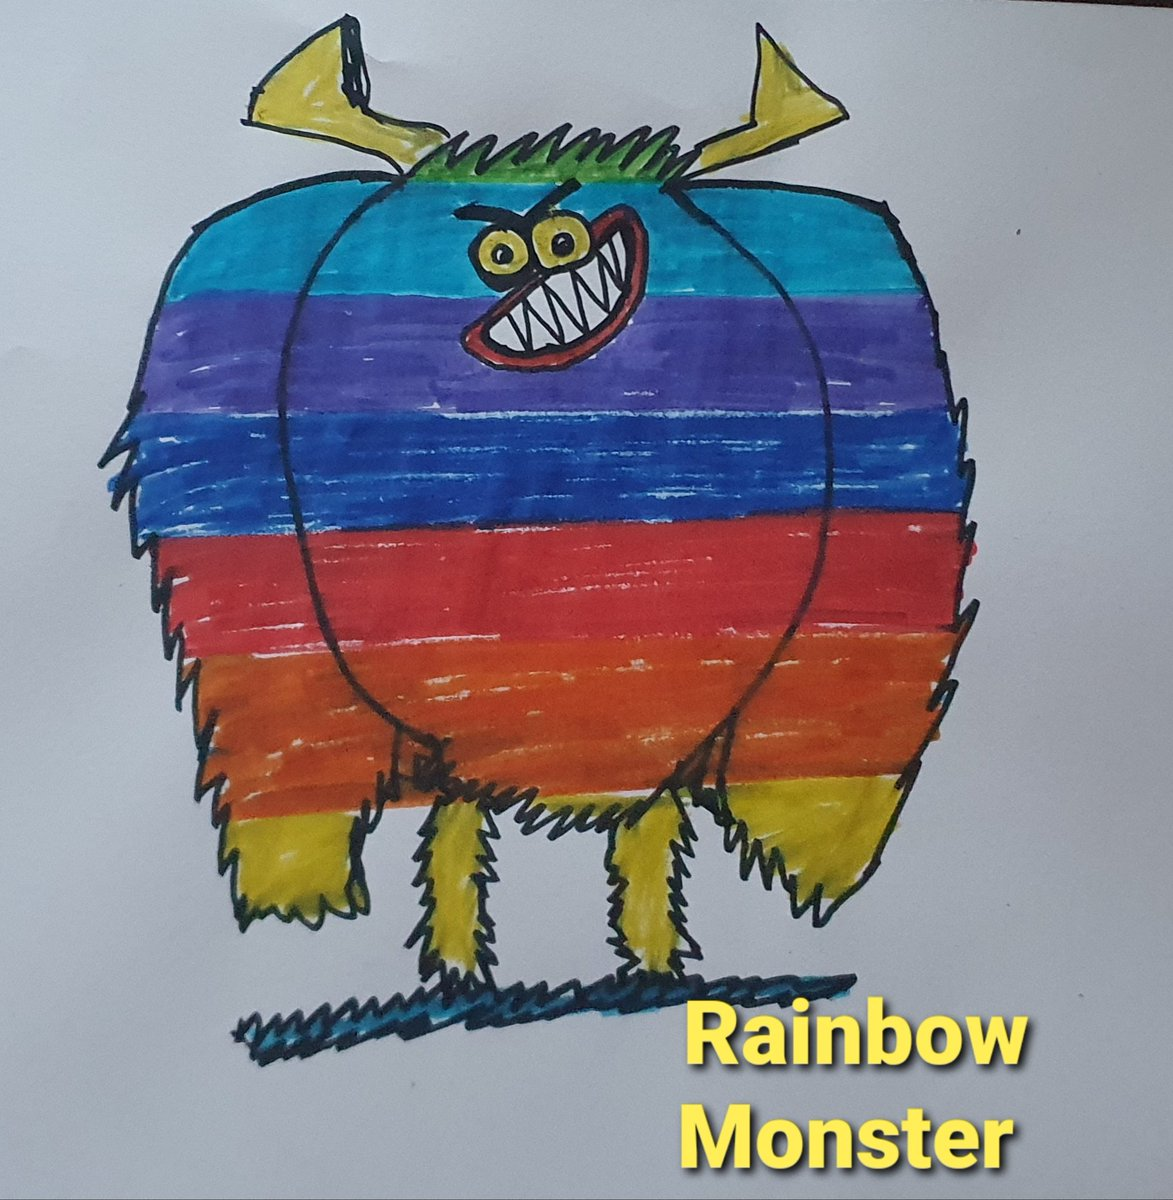 @RobBiddulph Mummy's Rainbow Monster Daughter's COVID-19 one eyed Monster🌈👍🌈